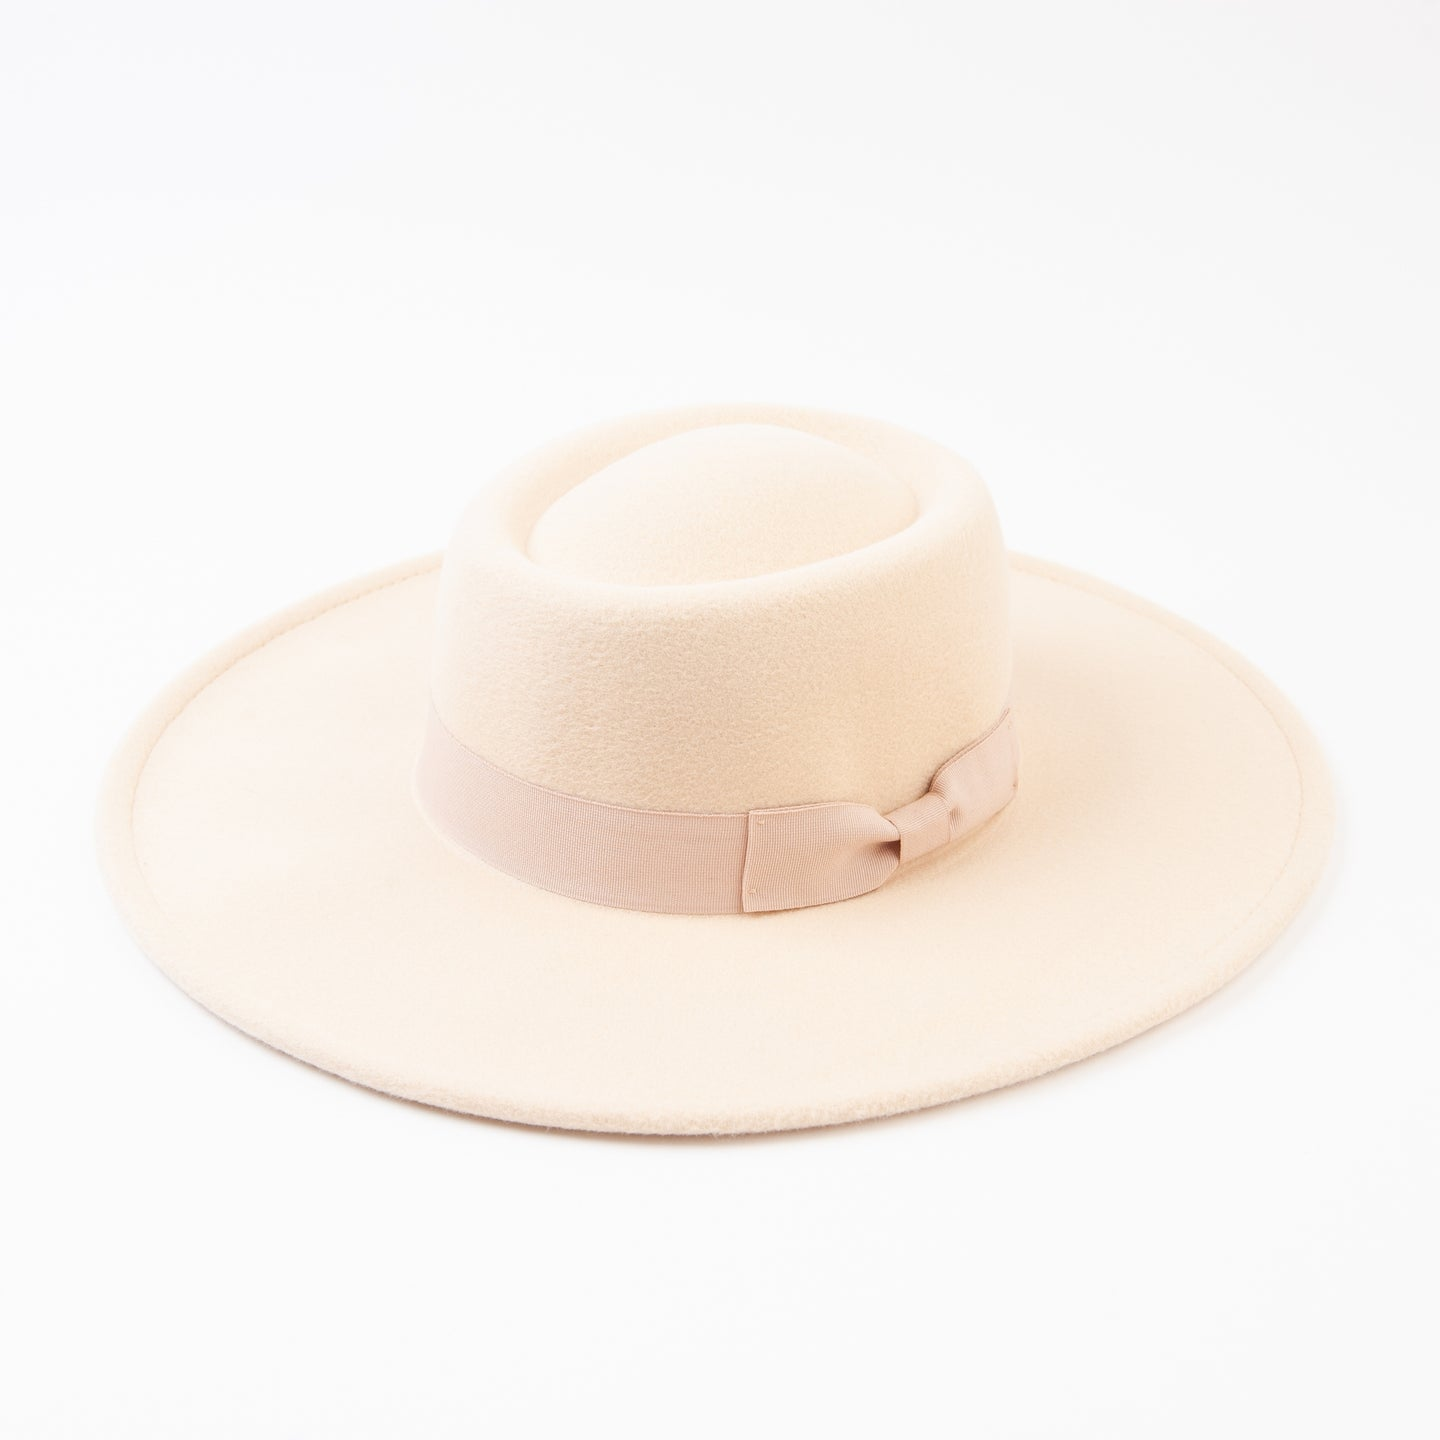 Rye Boater Hat in Milk